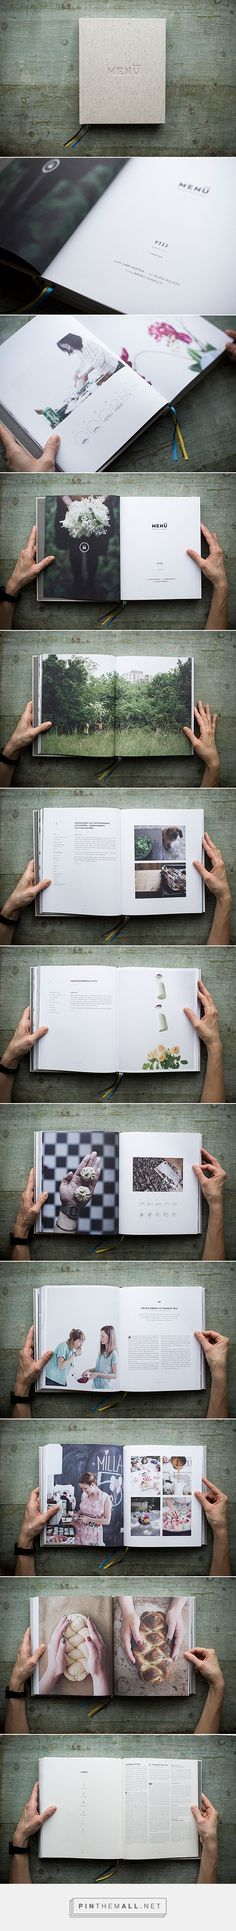 Love this beautiful cookbook. The photography is really lovely and very personal and I like the little icons throughout explaining various techniques.